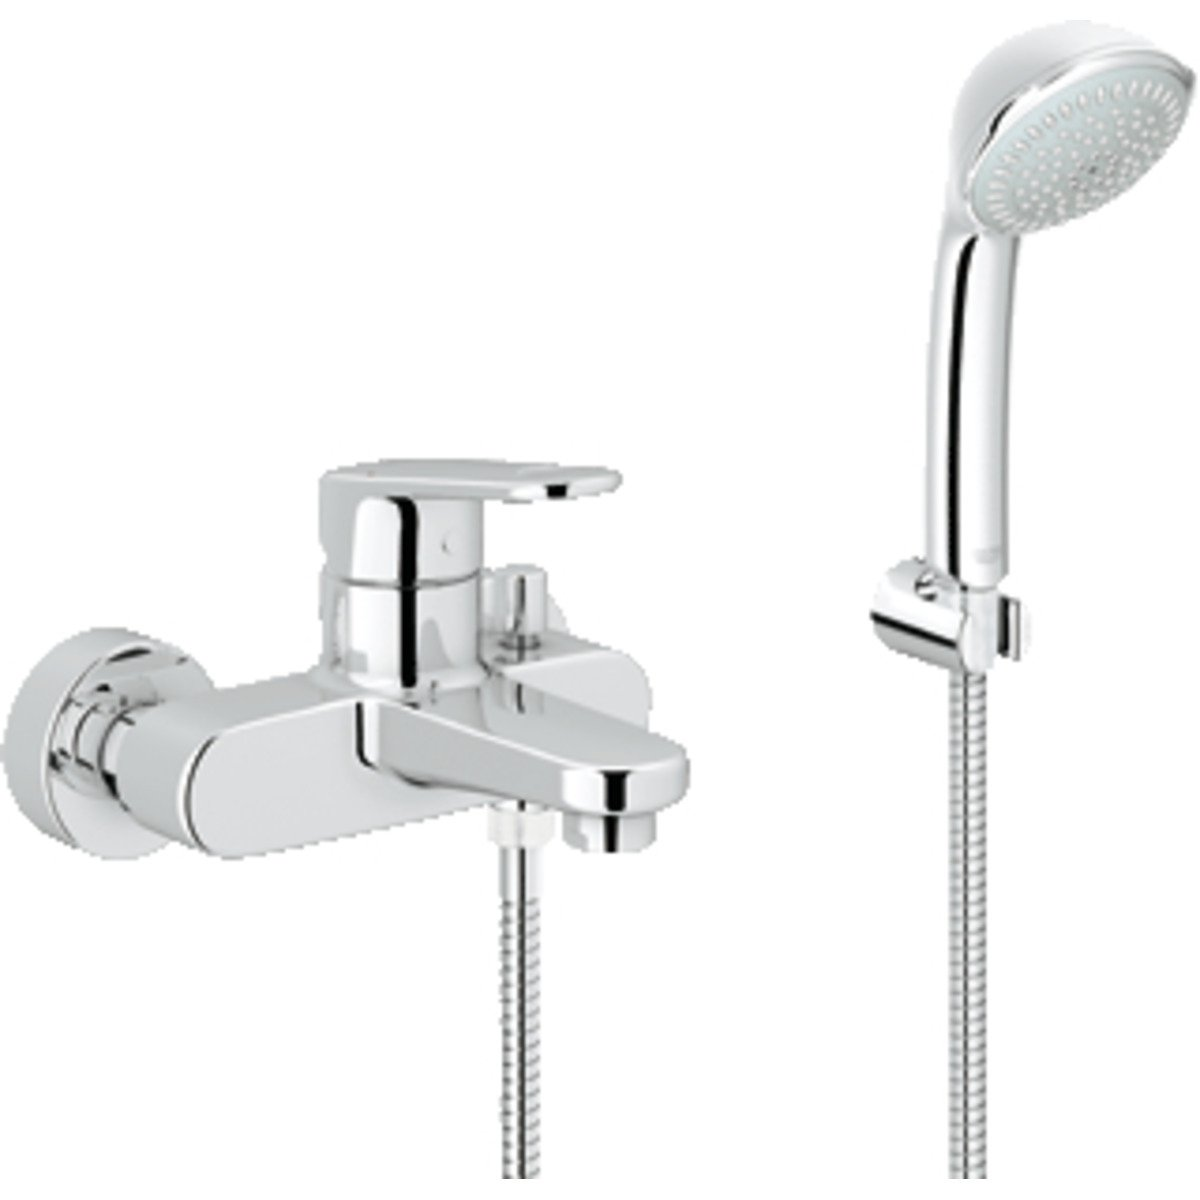 grohe europlus 3 robinet de bain avec inverseur et connexions avec garniture de douche chrome. Black Bedroom Furniture Sets. Home Design Ideas